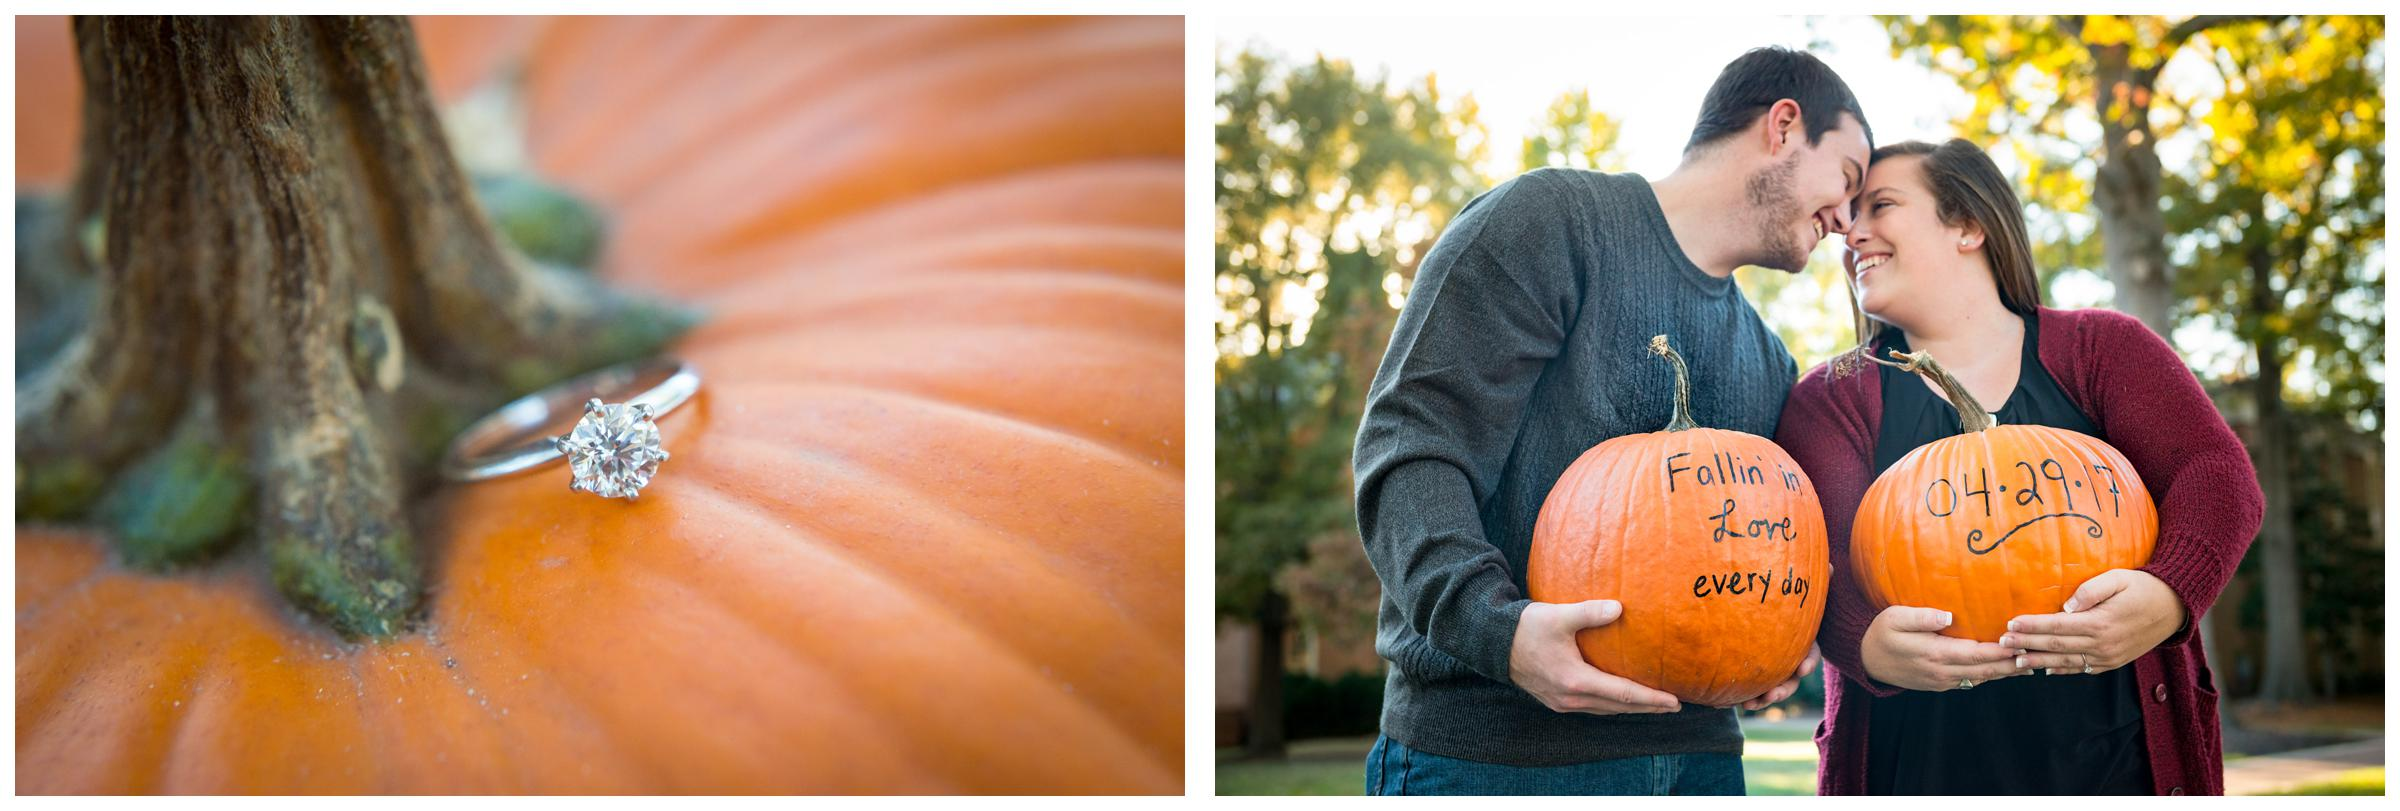 Engaged couple holding pumpkins with wedding date written on them.